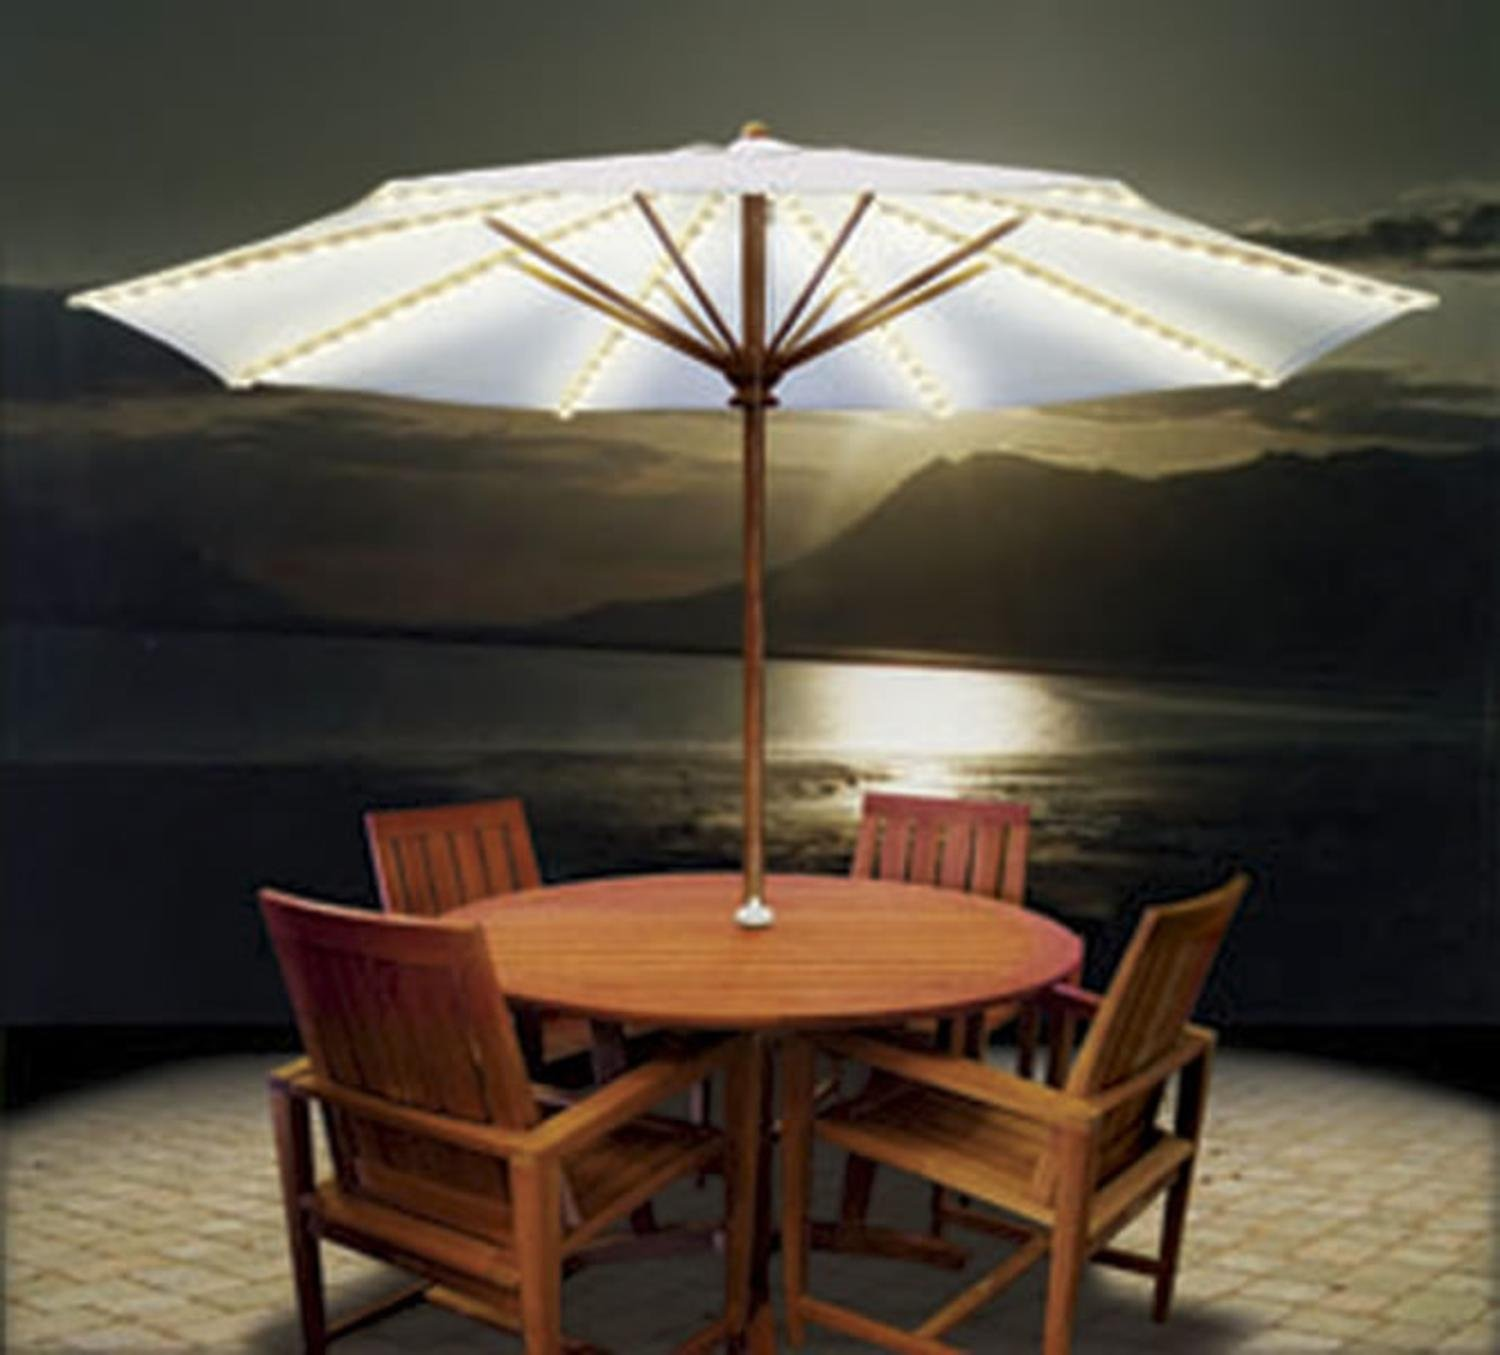 Outdoor Umbrella With Lights Top five best umbrella lights patio umbrella light outsidemodern workwithnaturefo